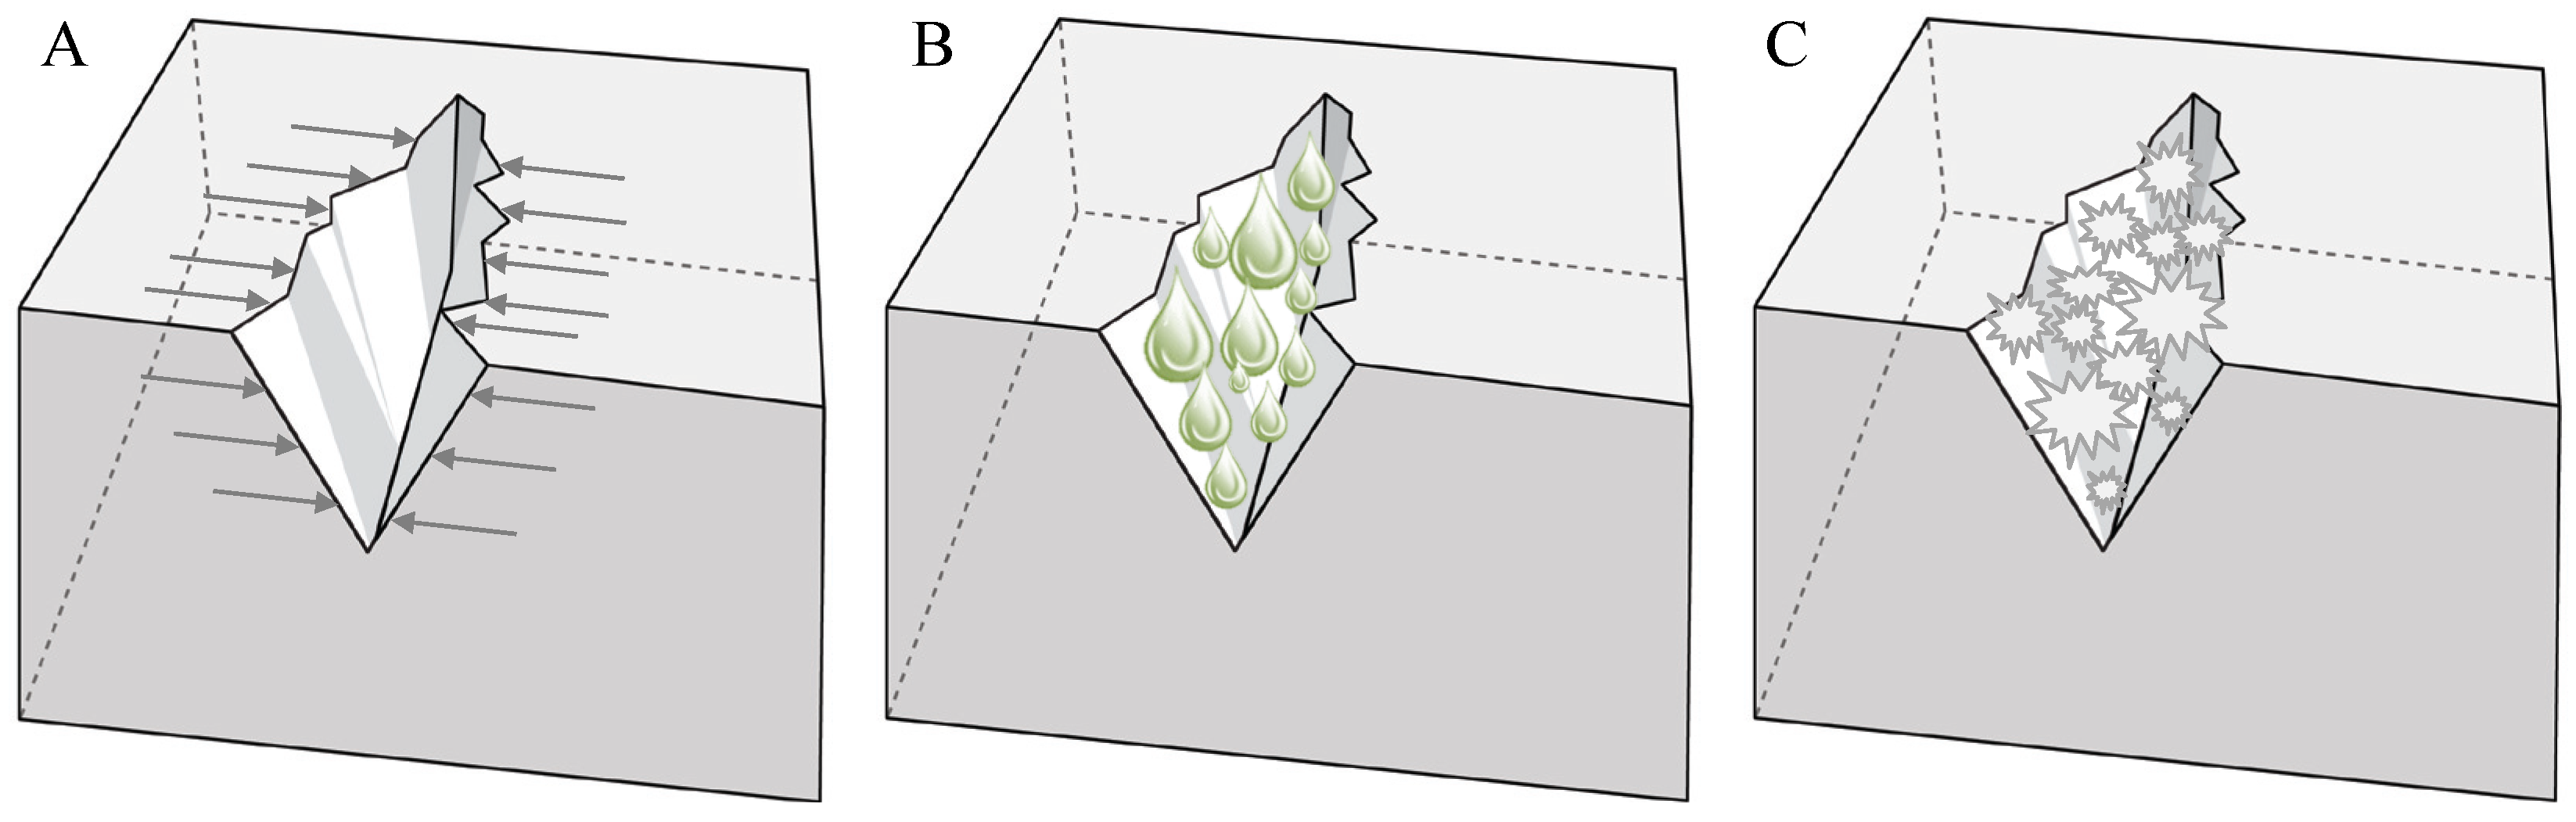 Materials | Free Full-Text | Self-Healing in Cementitious Materials ...